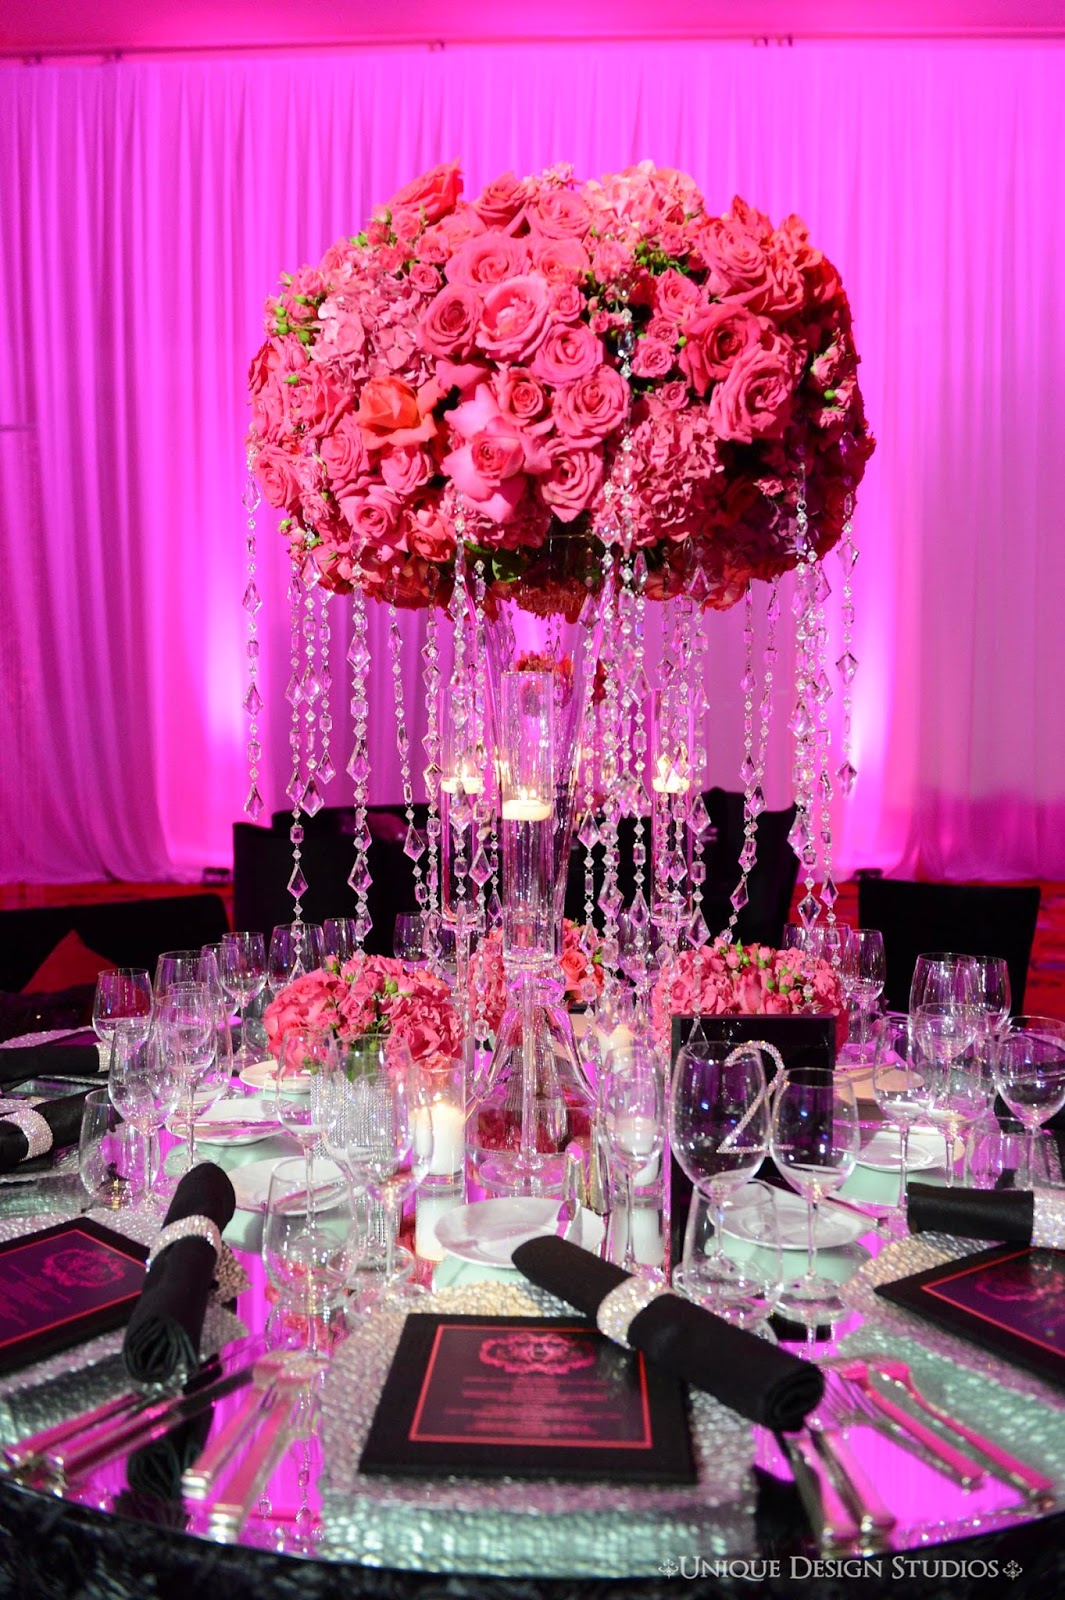 Tiffany cook events omg las vegas wedding reception